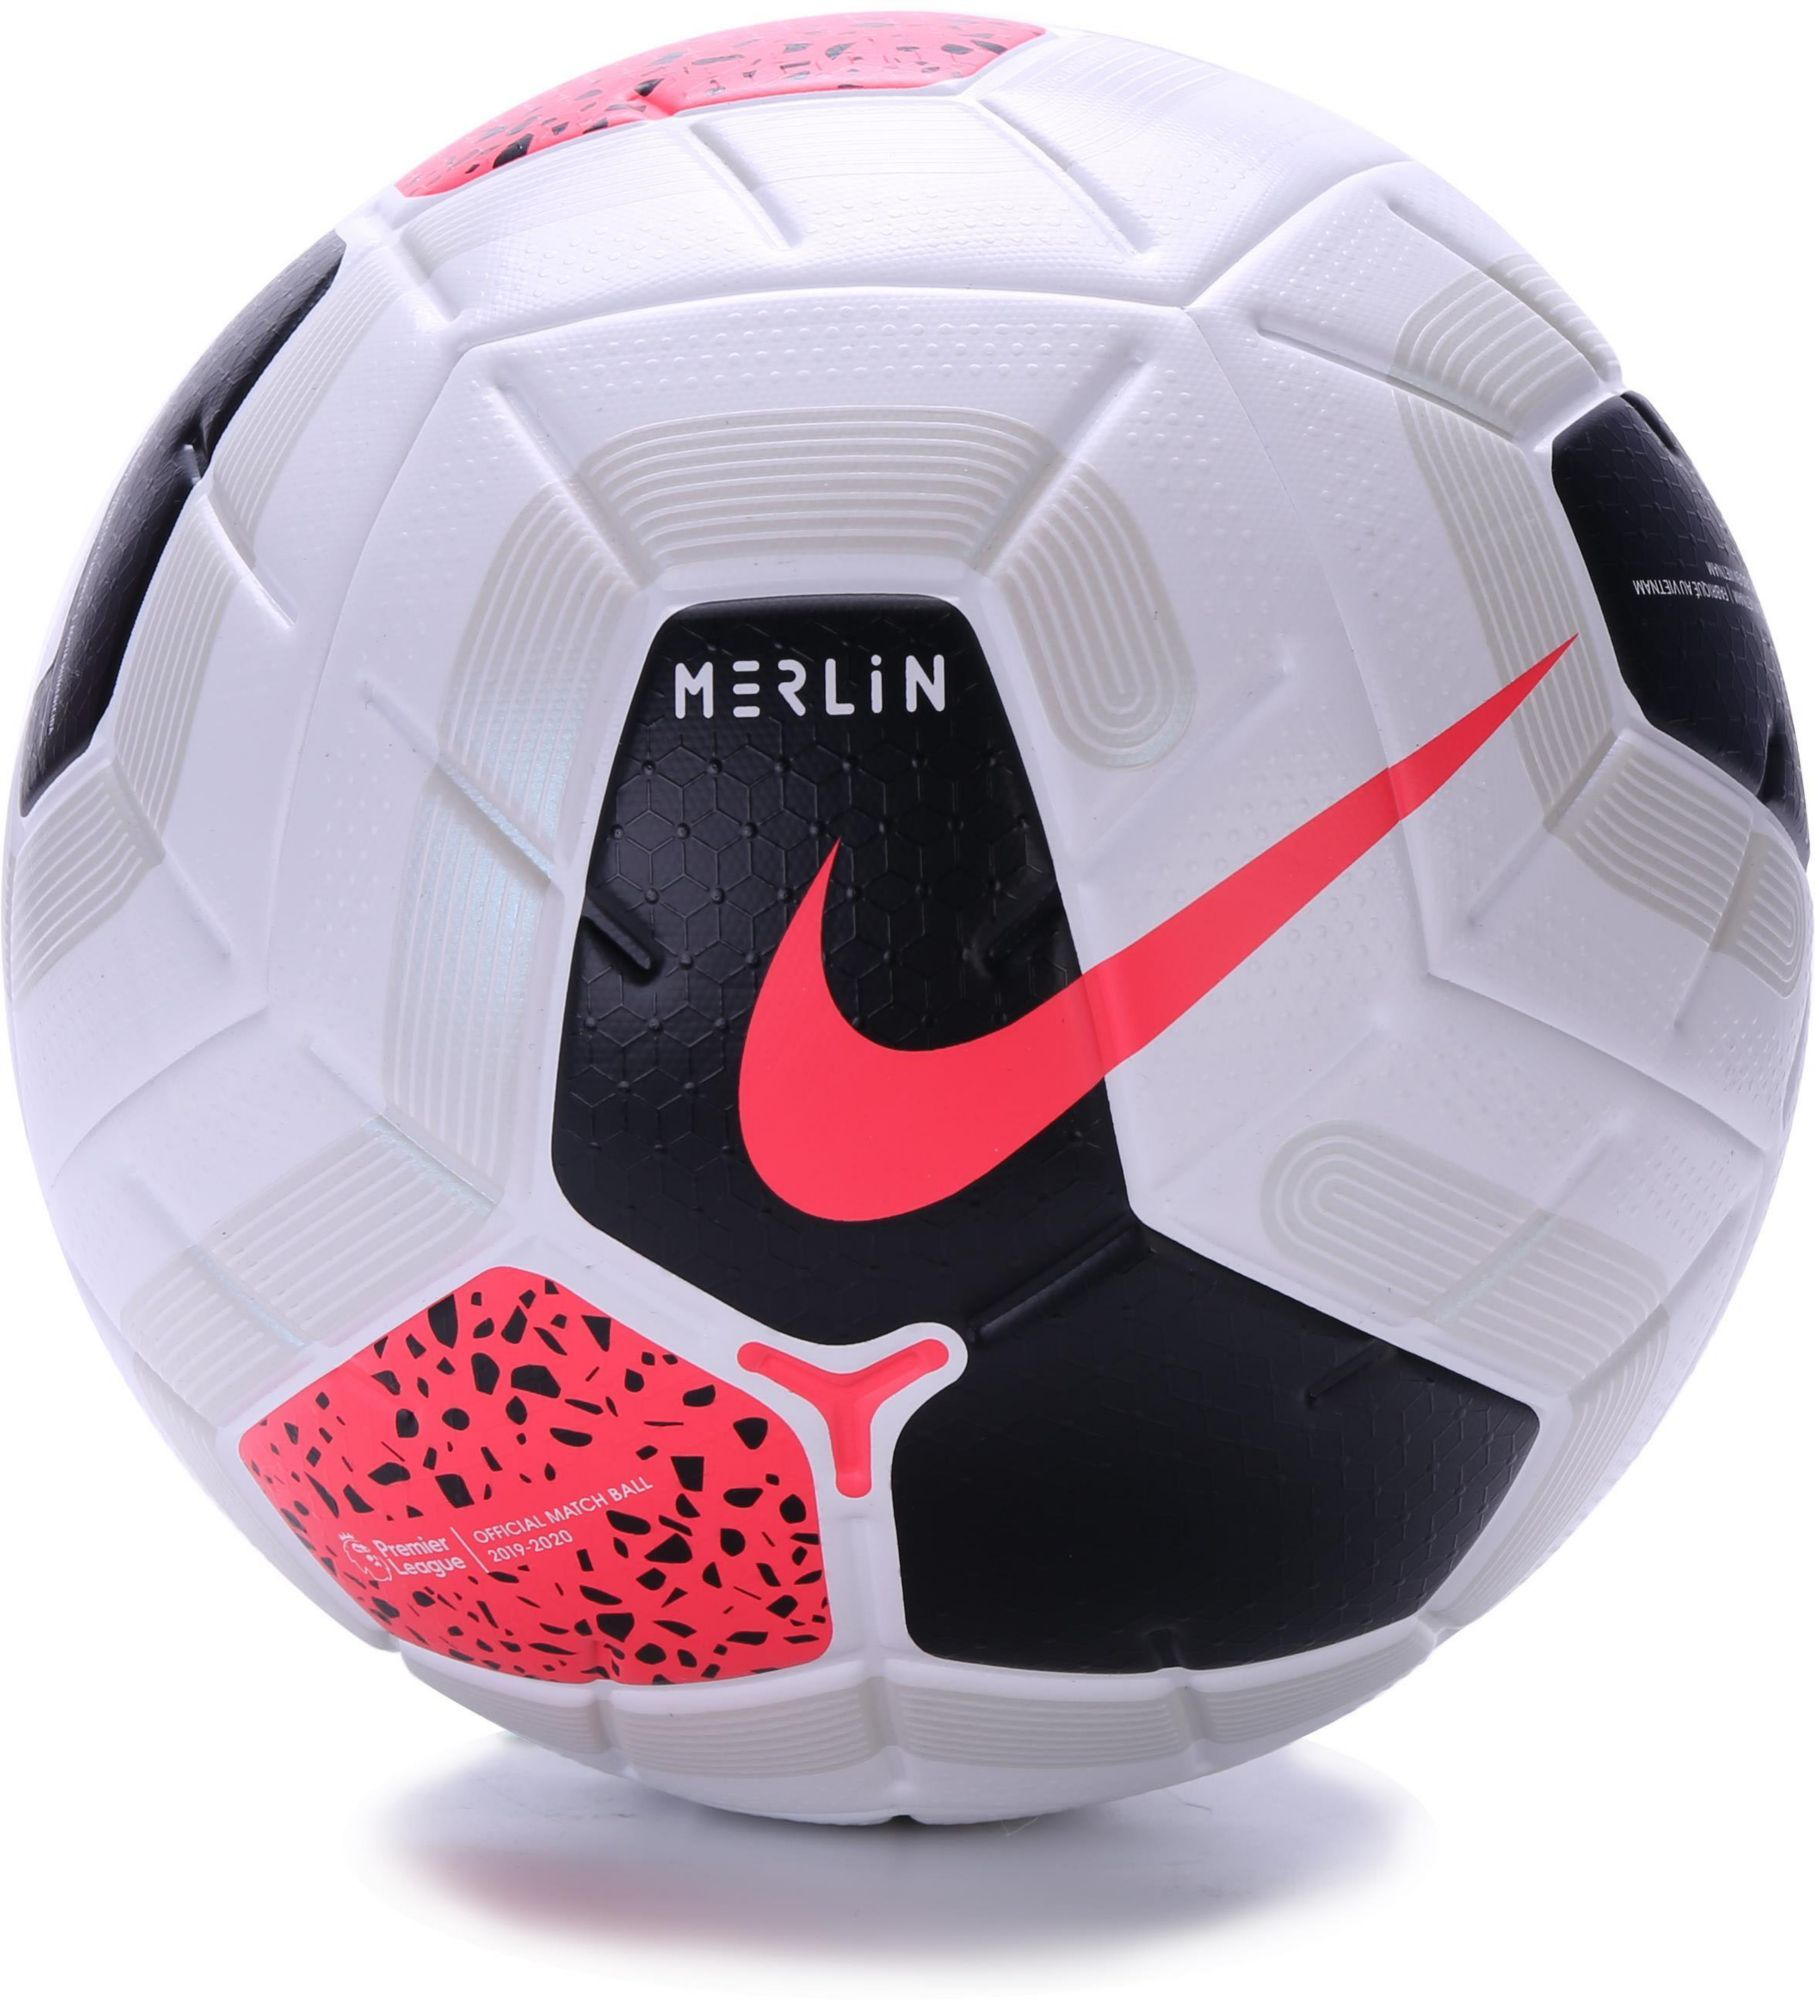 Nike Merlin Premier League Official Match Soccer Ball In 2020 Soccer Ball Nike Soccer Ball Soccer